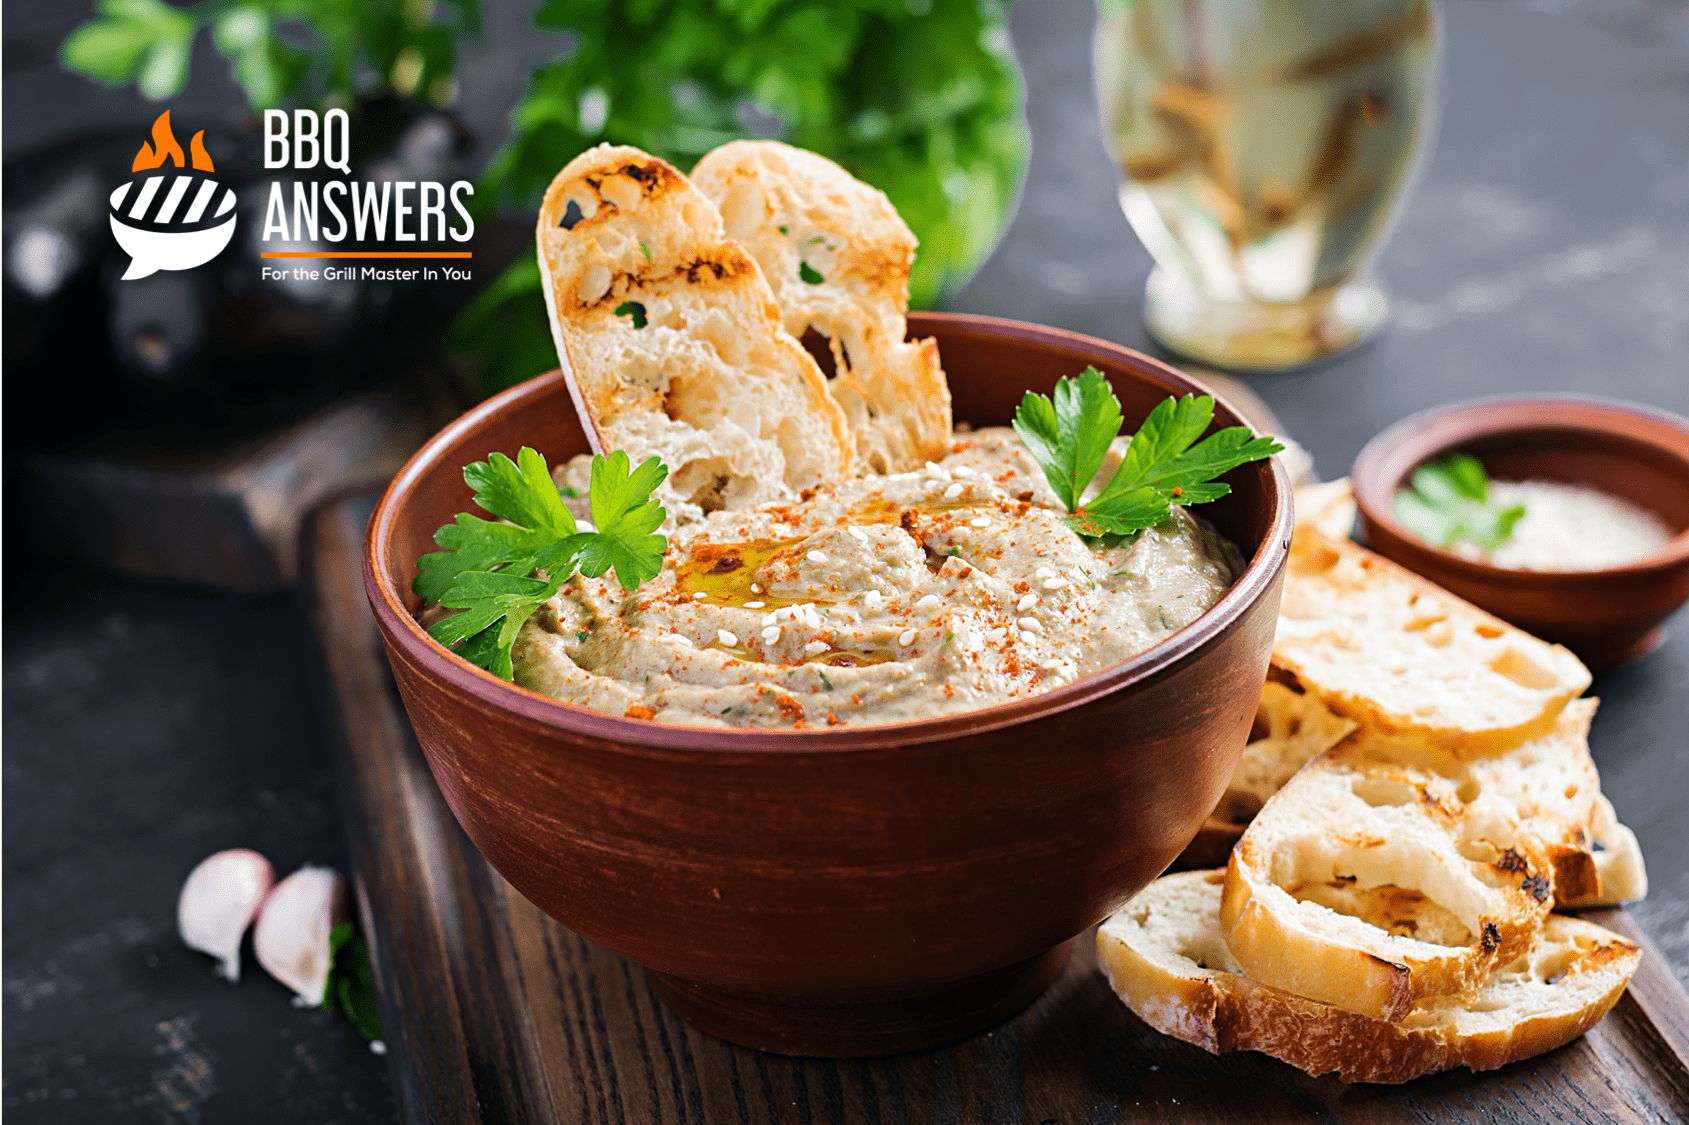 Baba Ganoush or African Chips and Dip | Vegan Dips and Dressings | BBQanswers